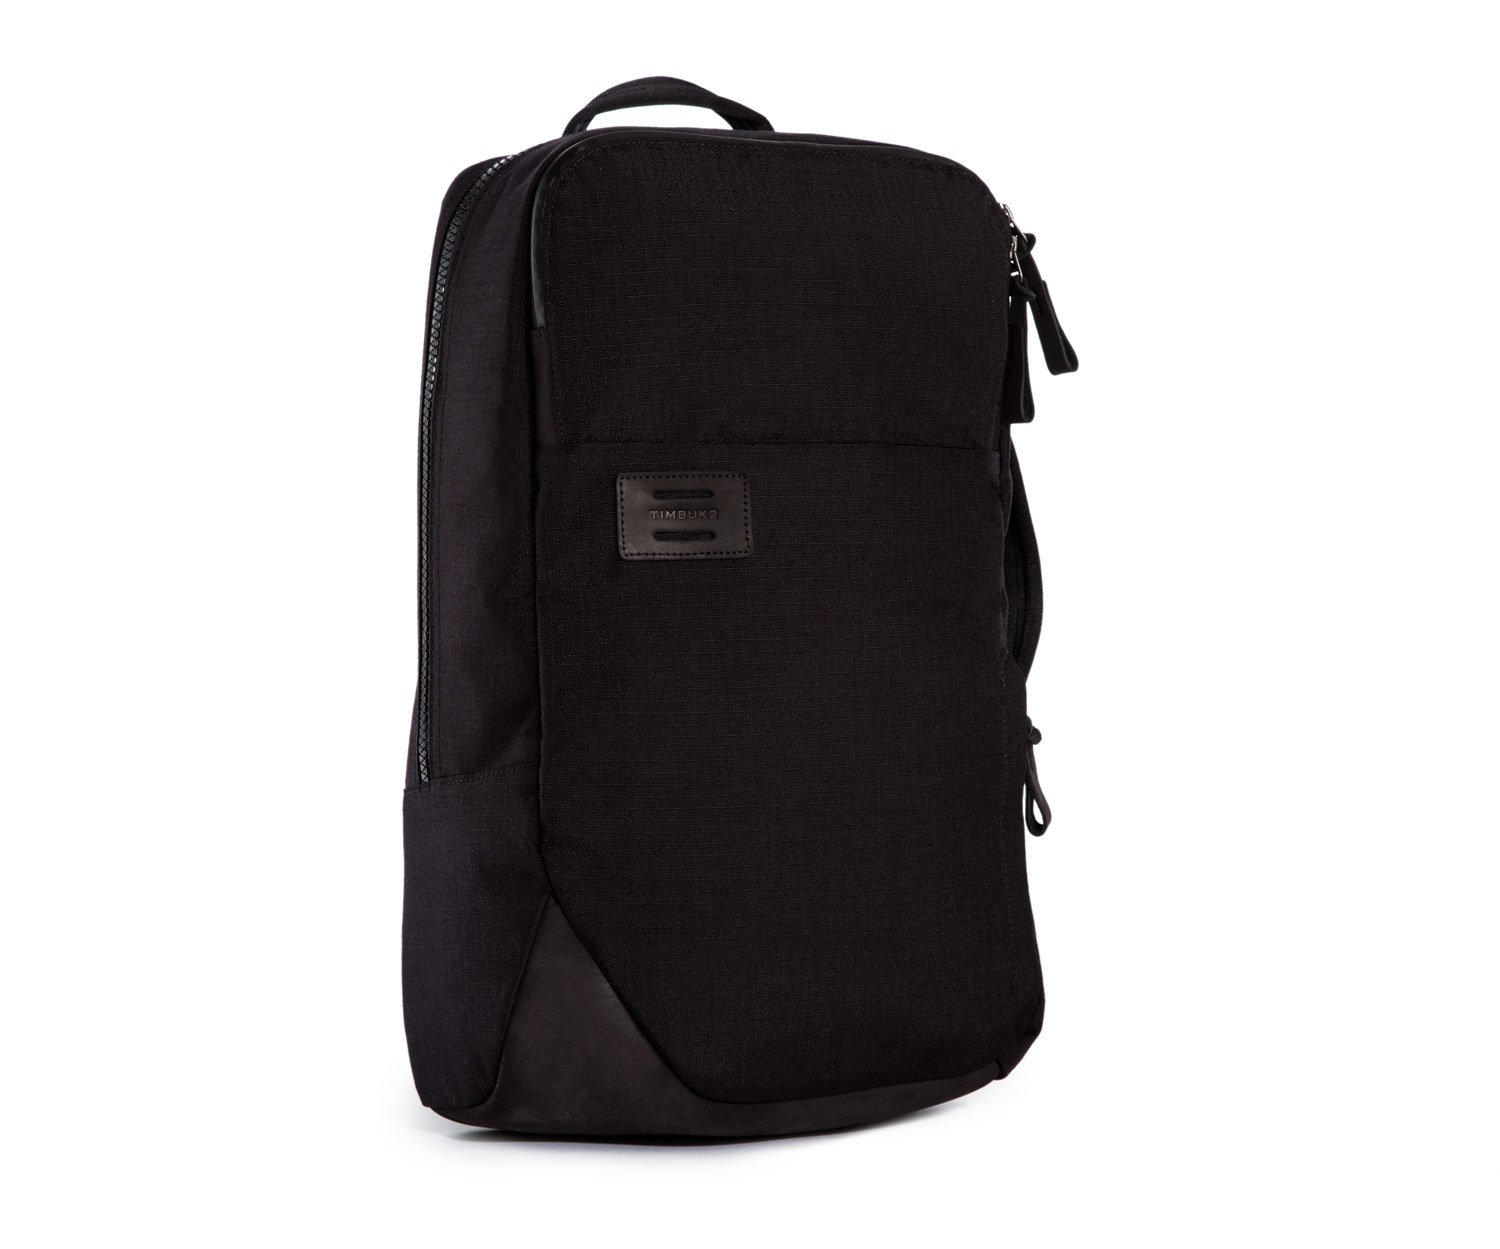 Timbuk2 Set Laptop Backpack, Black, One Size by Timbuk2